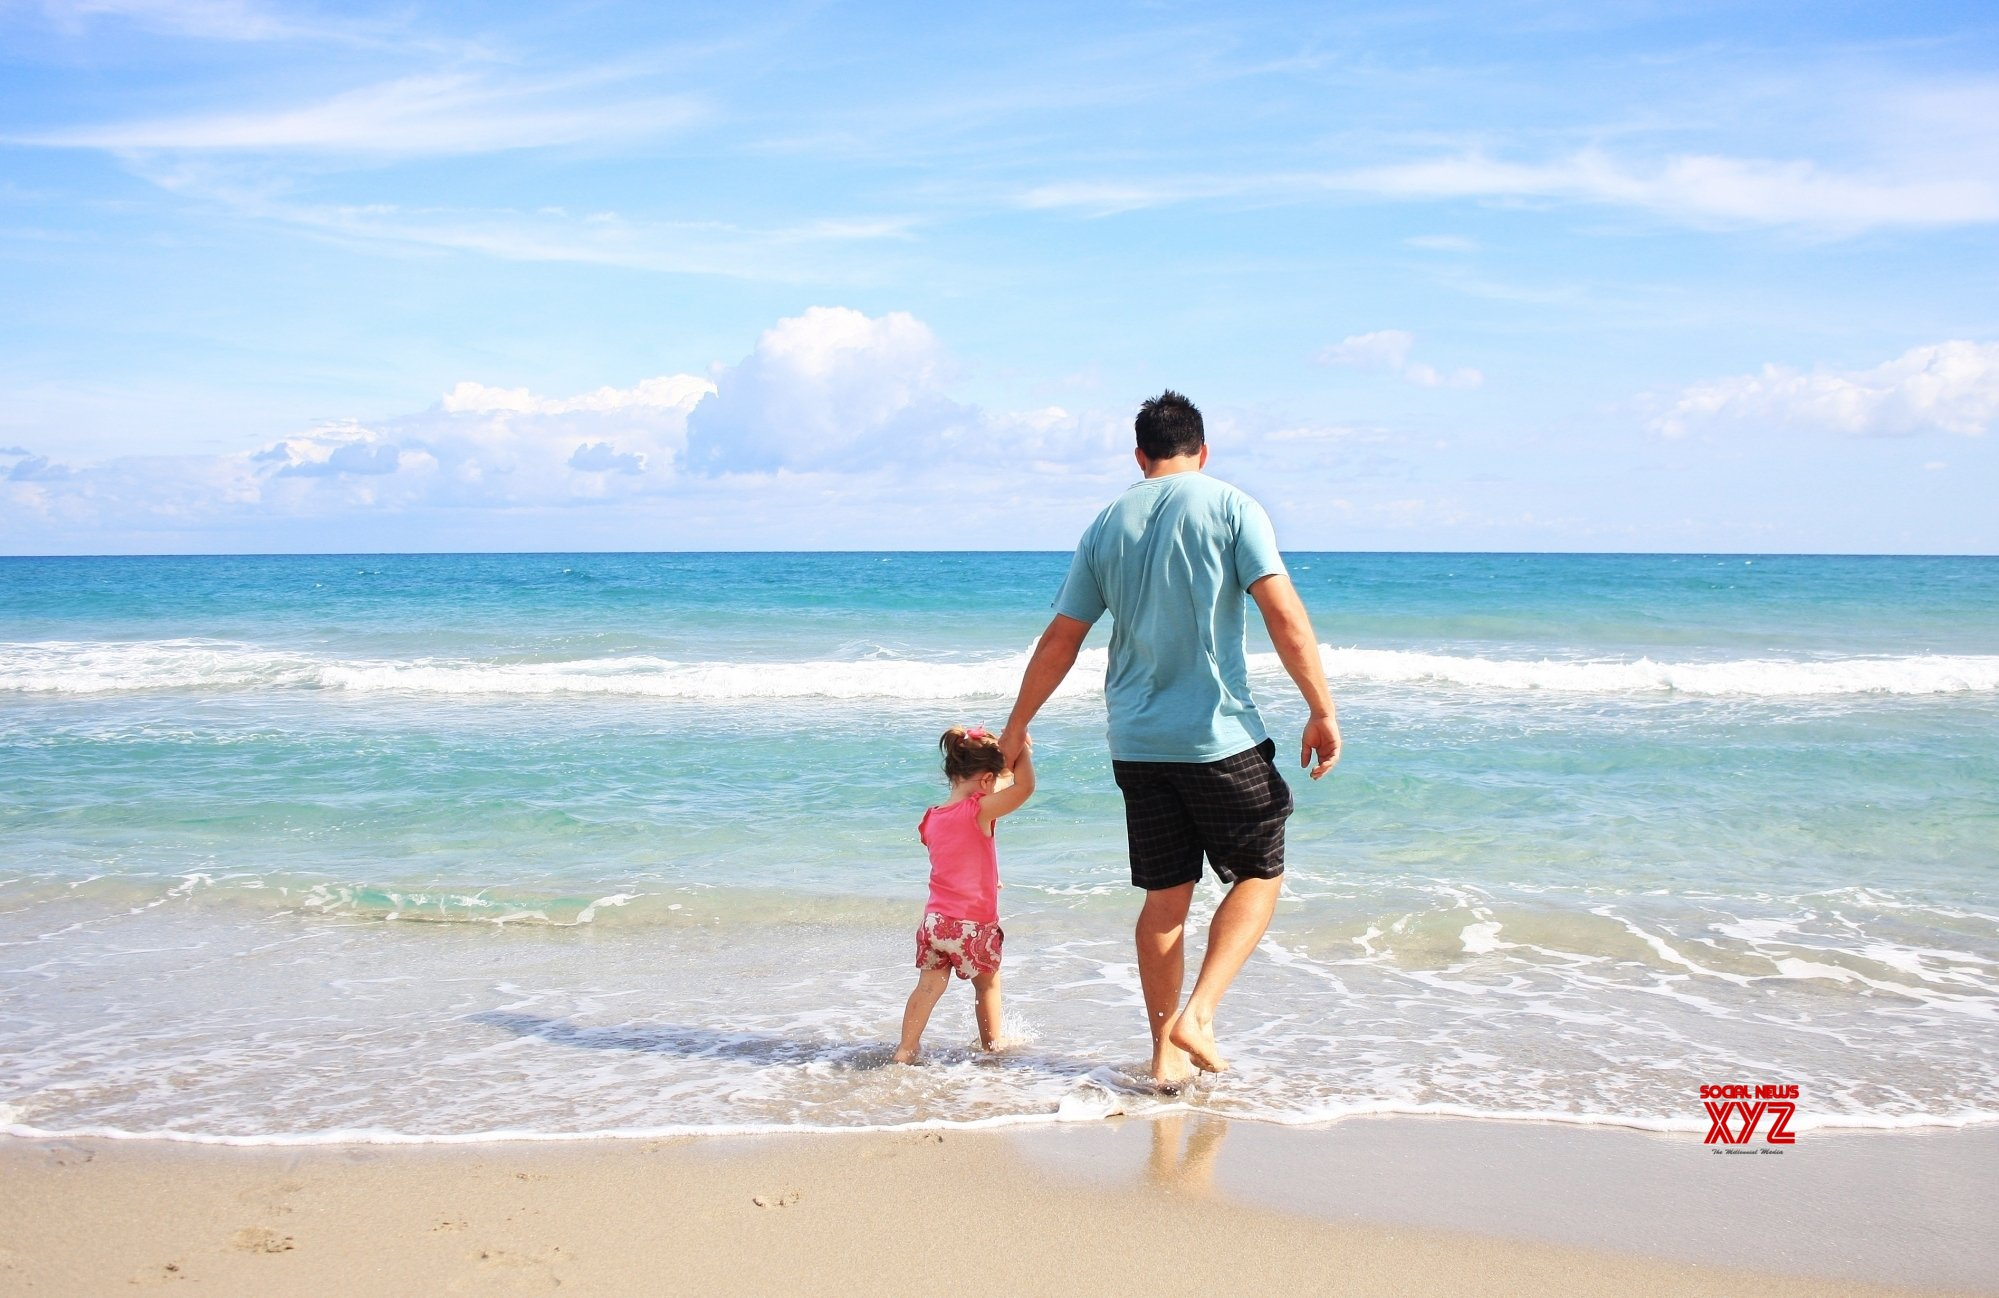 This is how a father should spend time with kids: Study